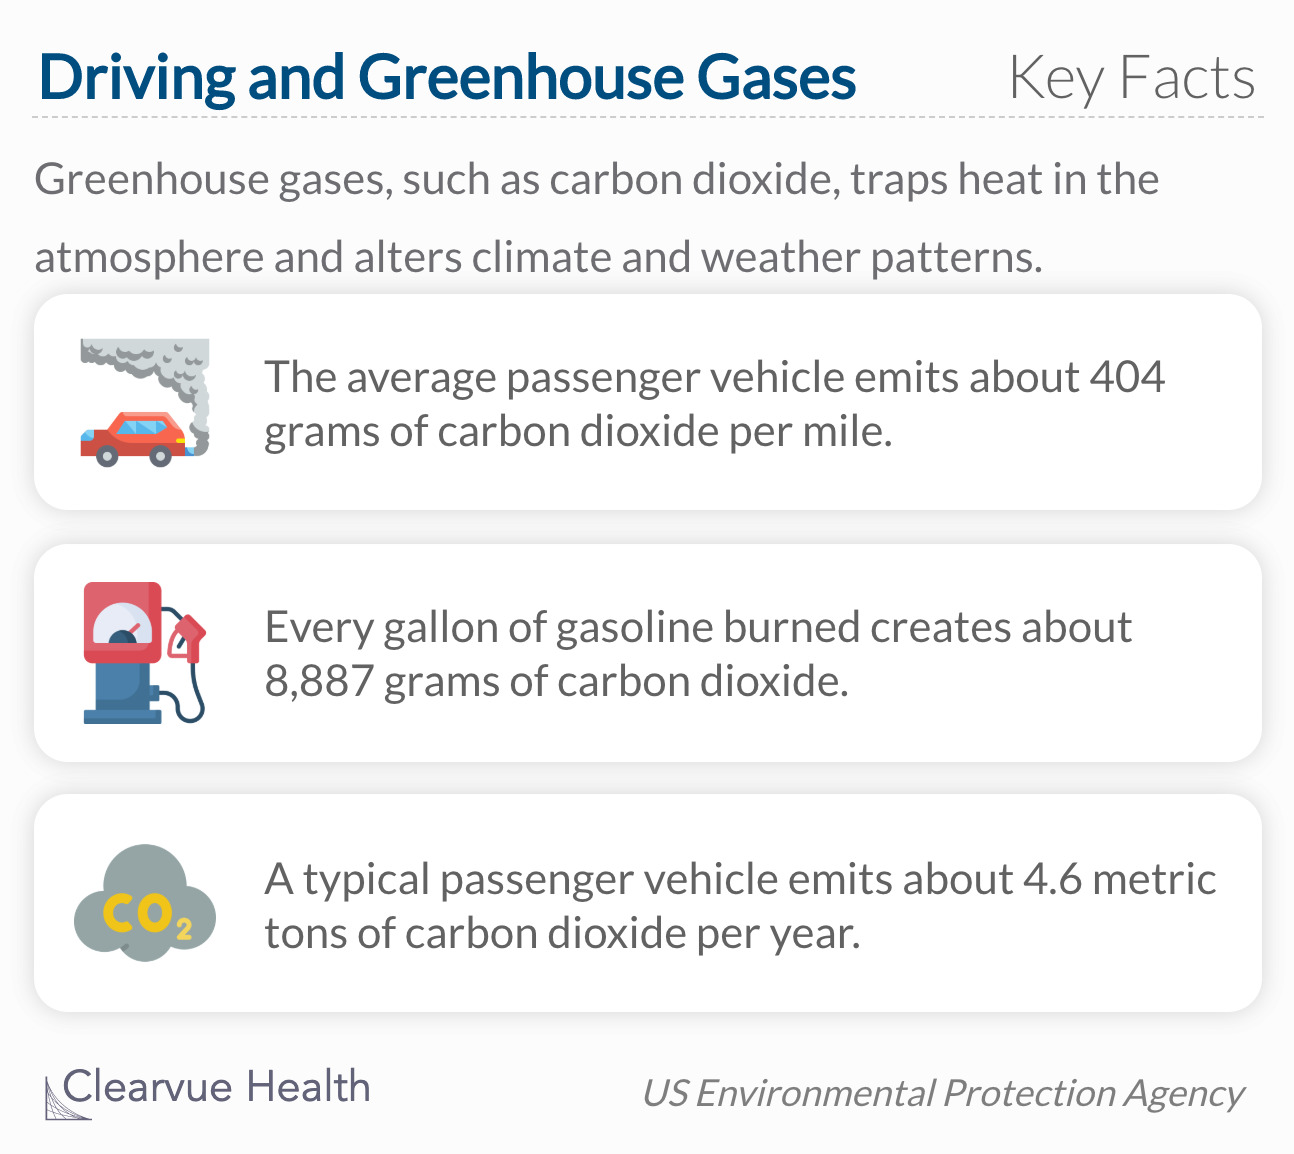 Greenhouse gases, such as carbon dioxide, traps heat in the atmosphere and alters climate and weather patterns.